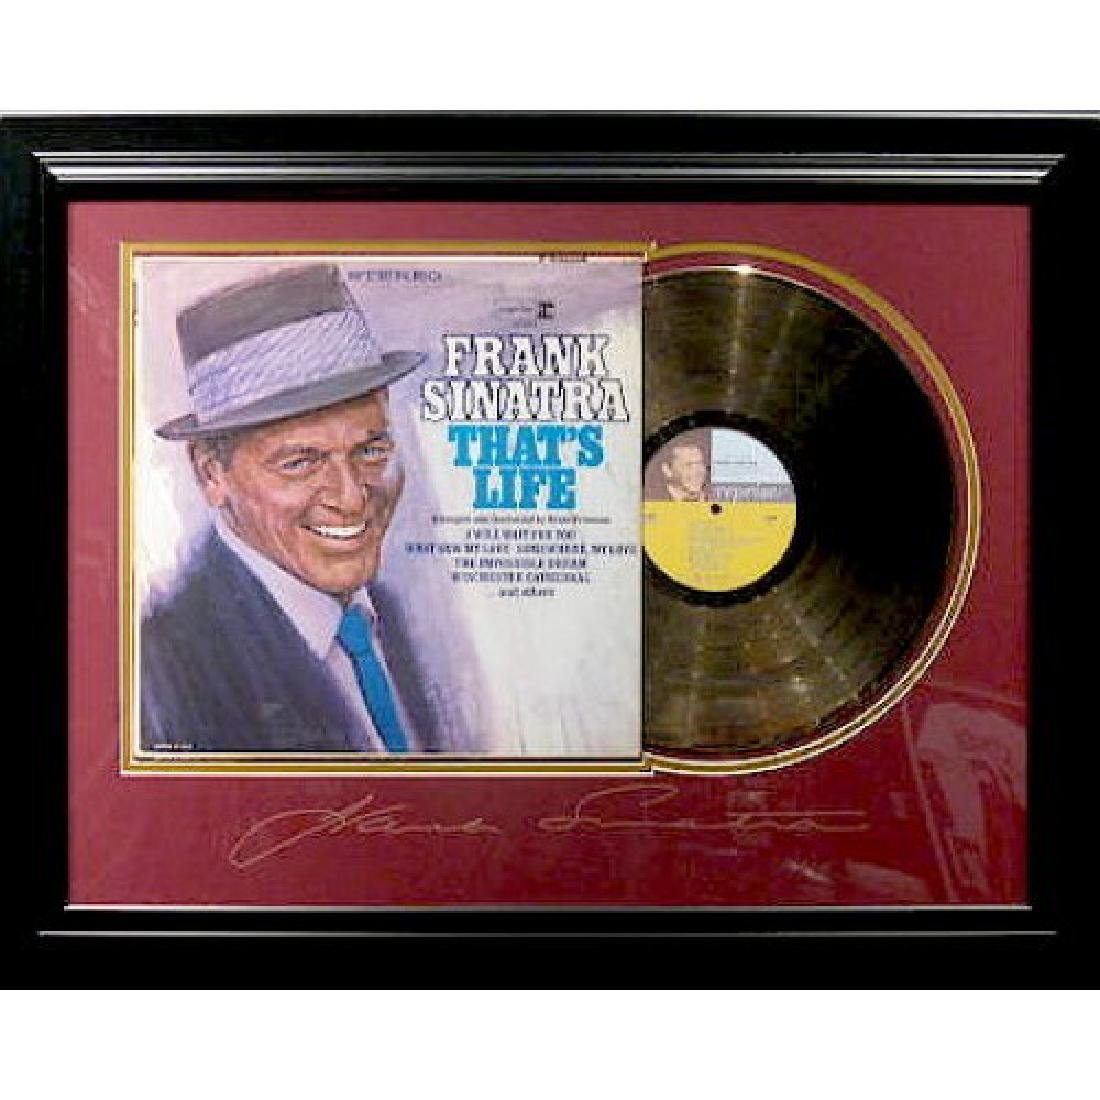 Frank Sinatra Engraved with Gold Album